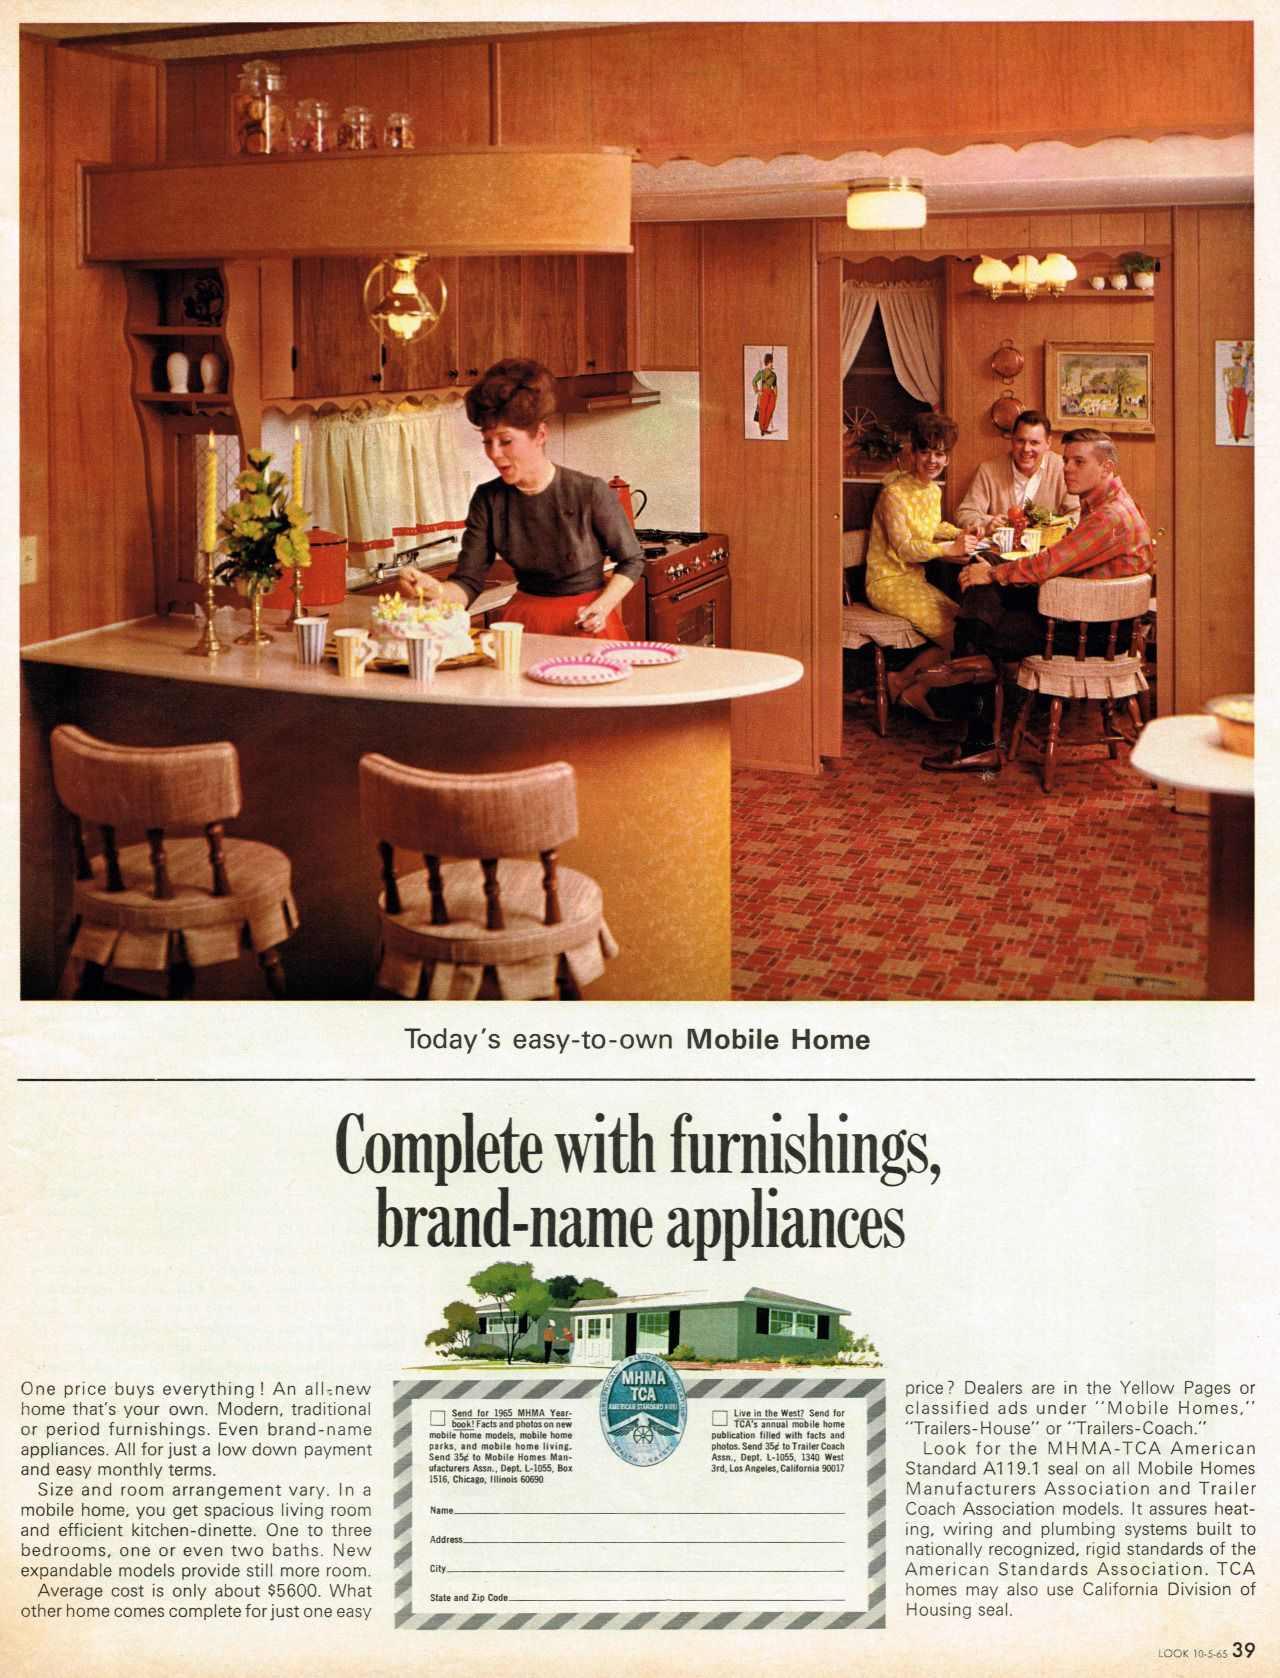 Mobile Homes Manufacturers Association October 1965